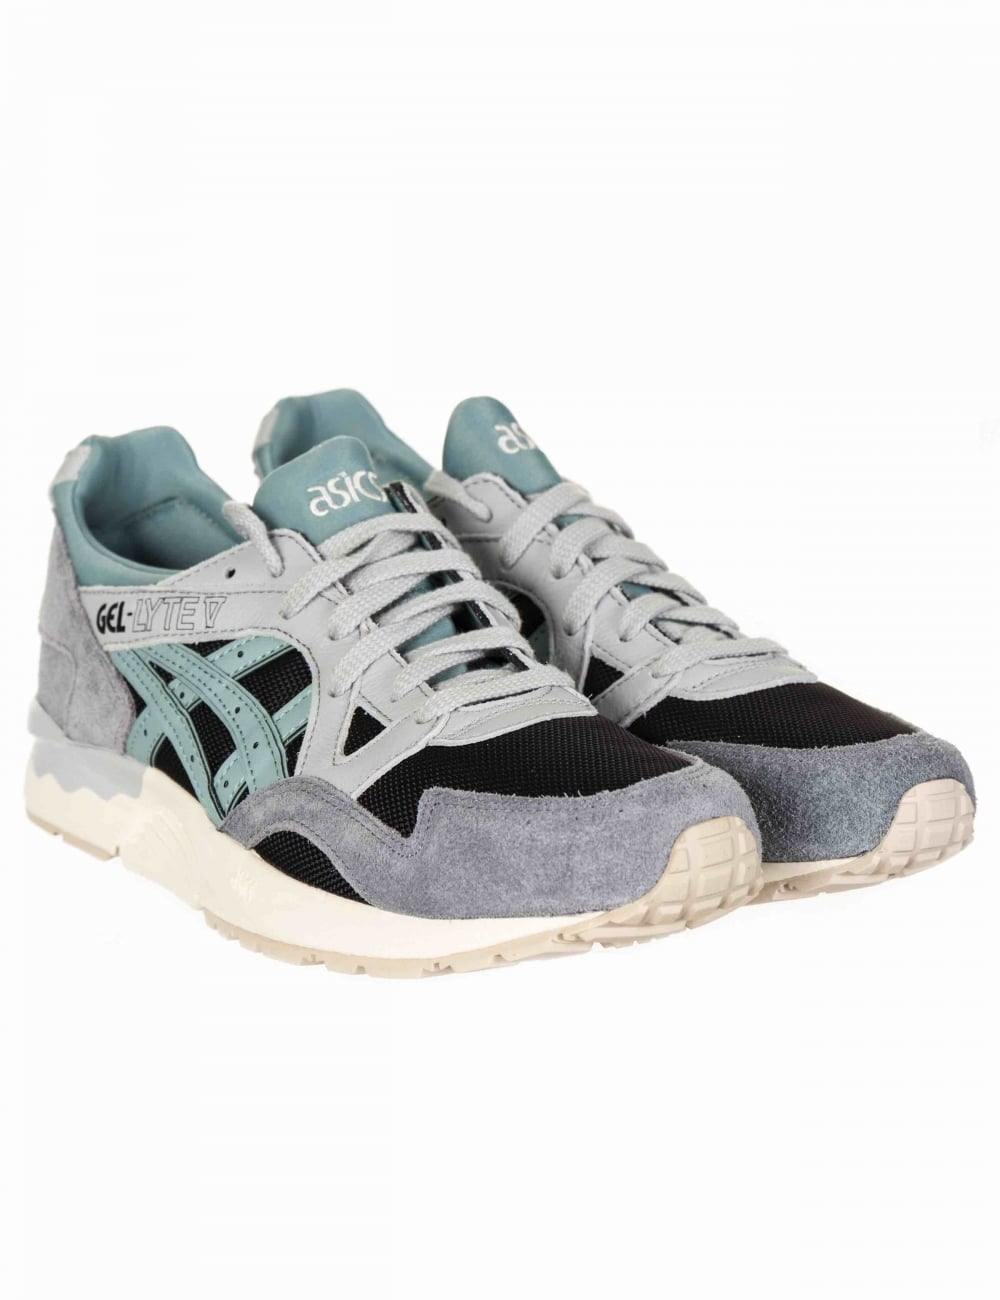 the latest fff29 a4f7c Gel Lyte V Trainers - Black/Blue Surf